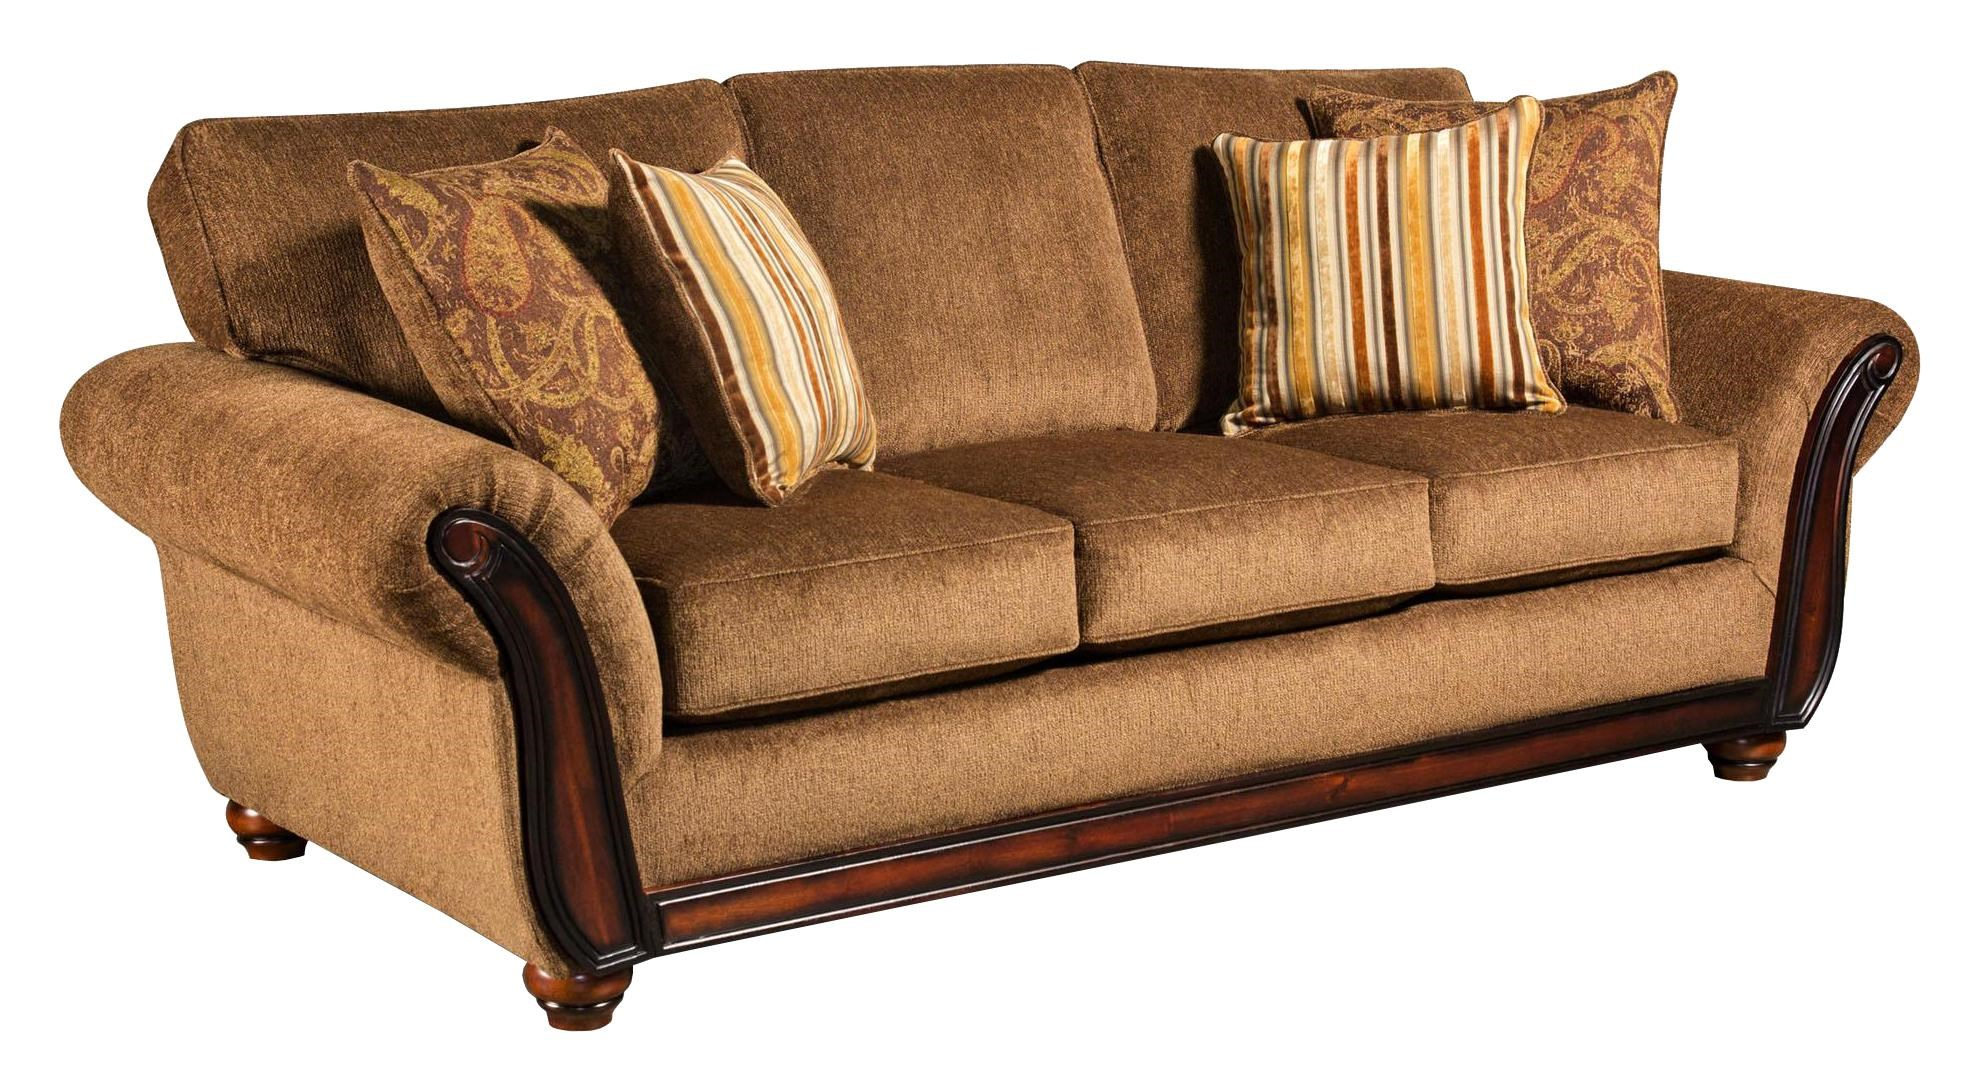 American Sofa Images 5650 Sofa With Wood Face On Arms By American Furniture At Prime Brothers Furniture